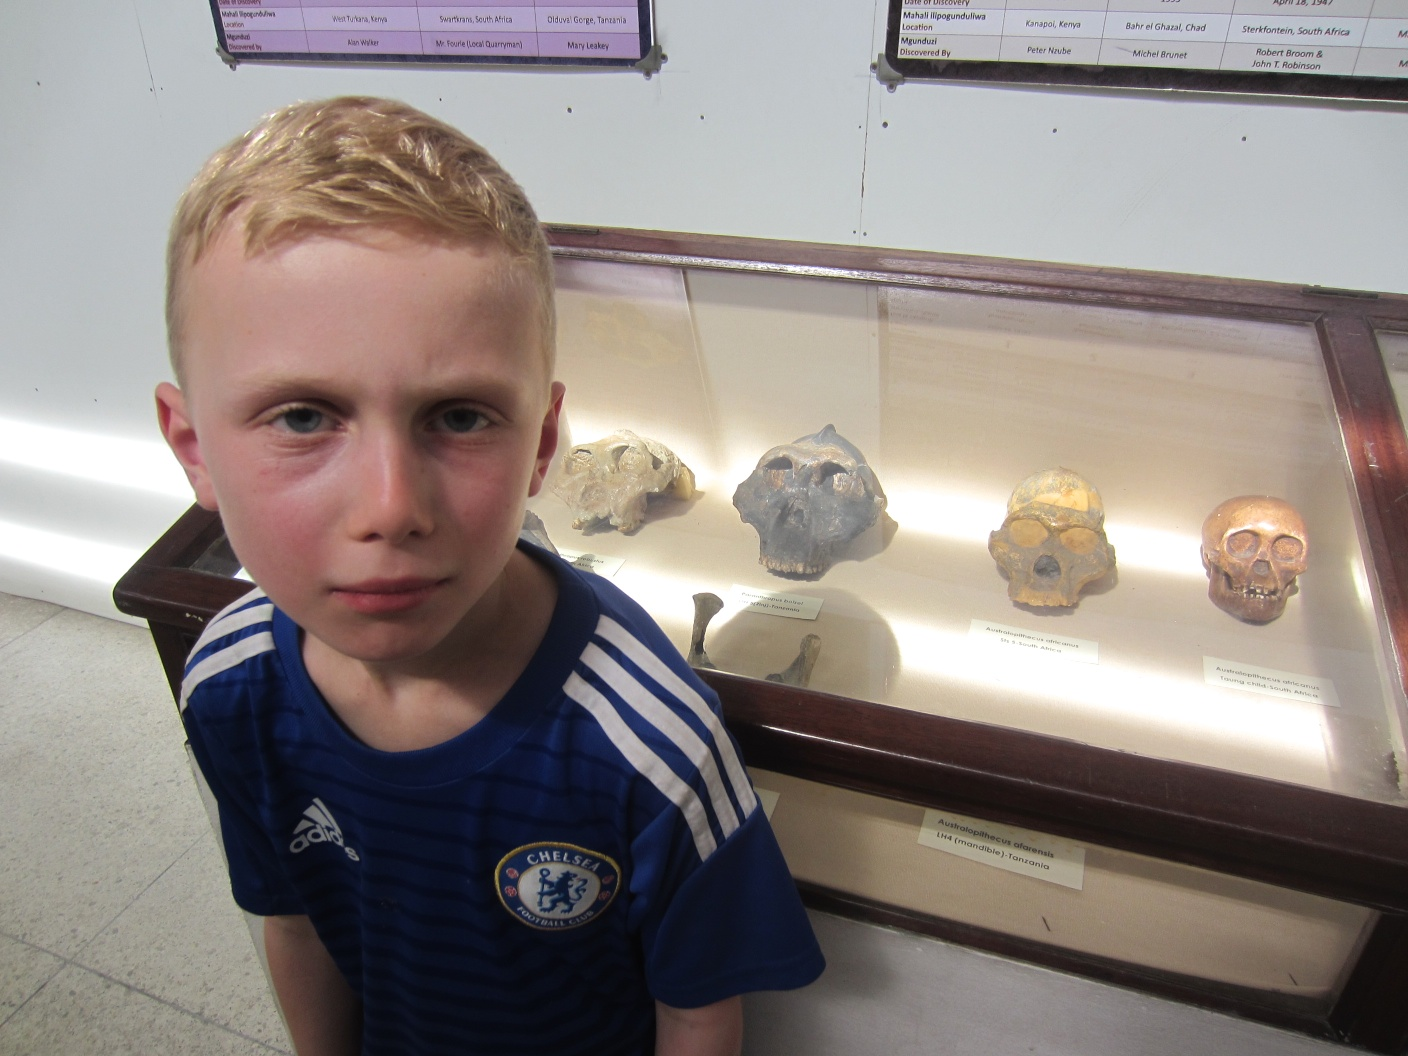 Isaac bears a striking resemblance to hislong lost relatives at the National Museum in Dar es Salaam.